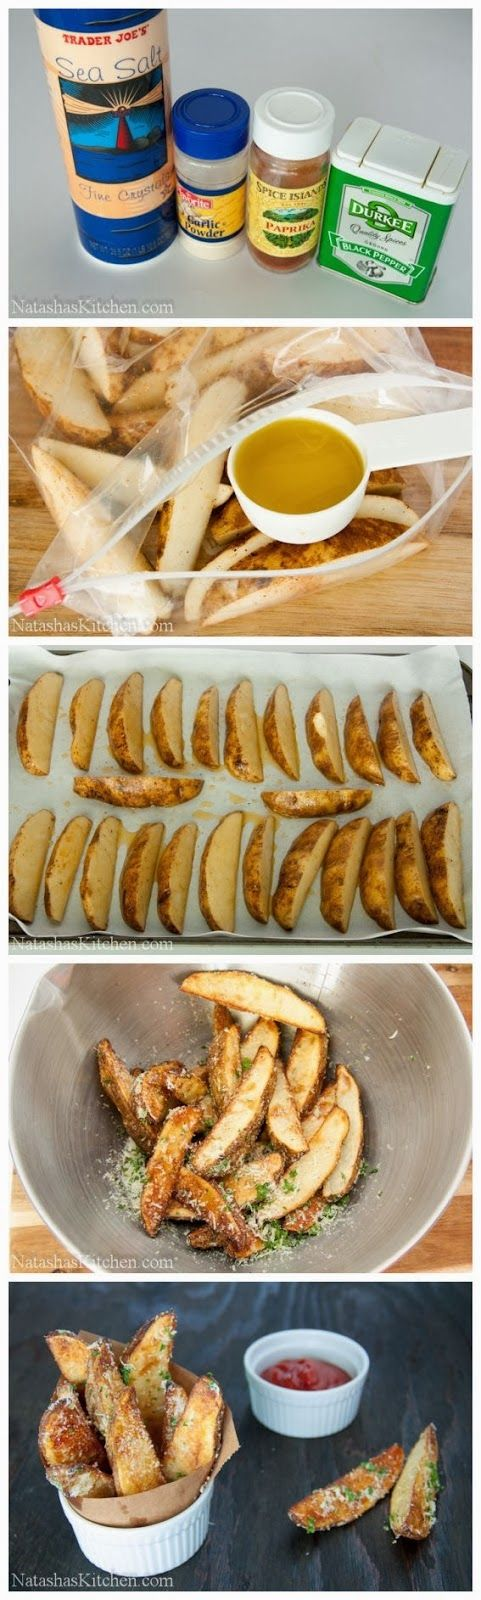 How To Oven Baked Potato Wedges